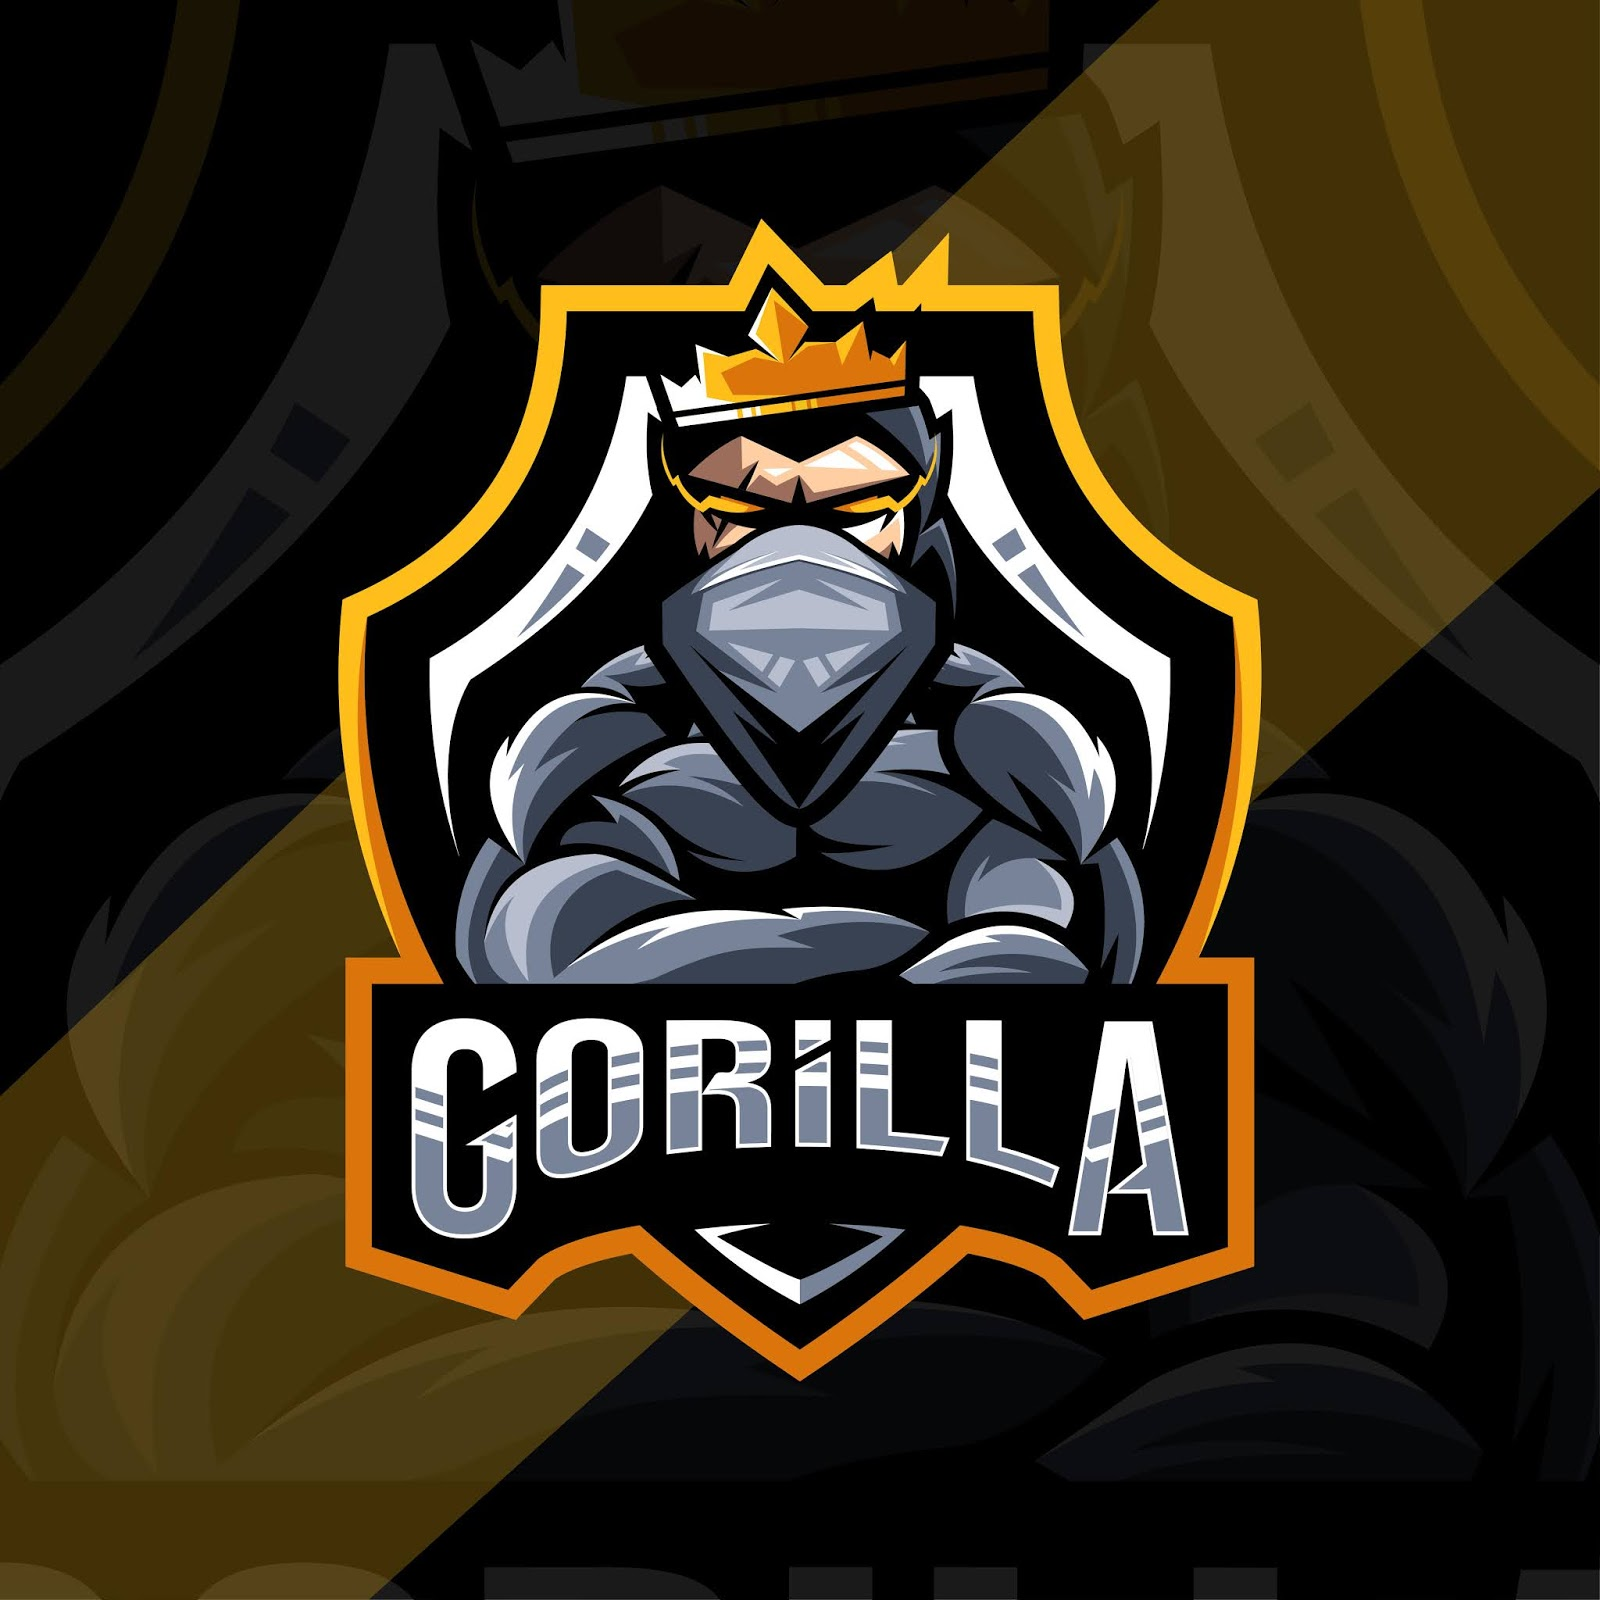 King Gorilla Mascot Logo Design Free Download Vector CDR, AI, EPS and PNG Formats